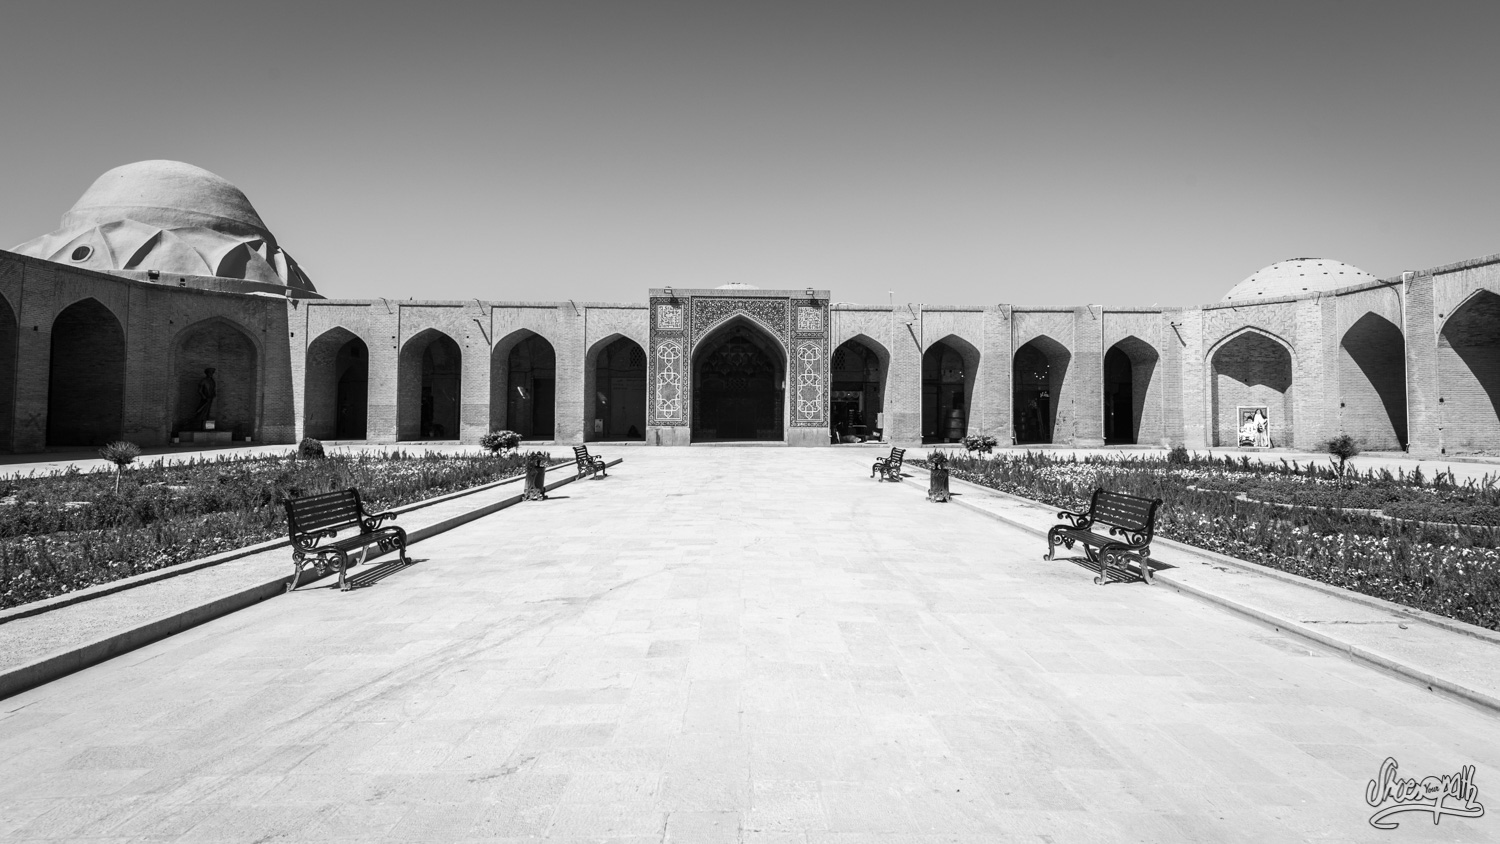 Kerman, place Ganjali Khan - Iran